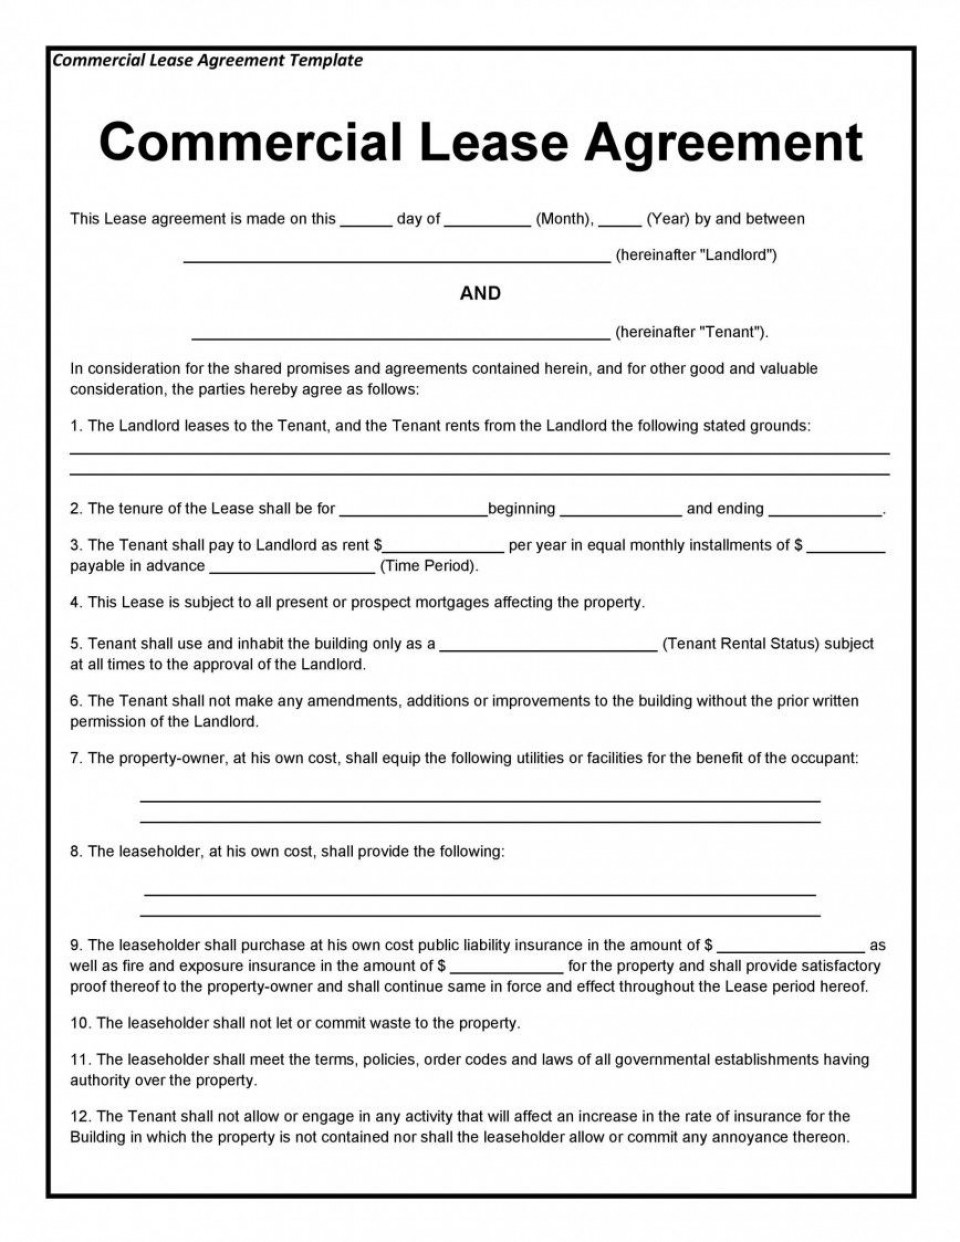 000 Unique Simple Lease Agreement Template High Resolution  Tenancy Free Download Rent Format In Word India Rental960